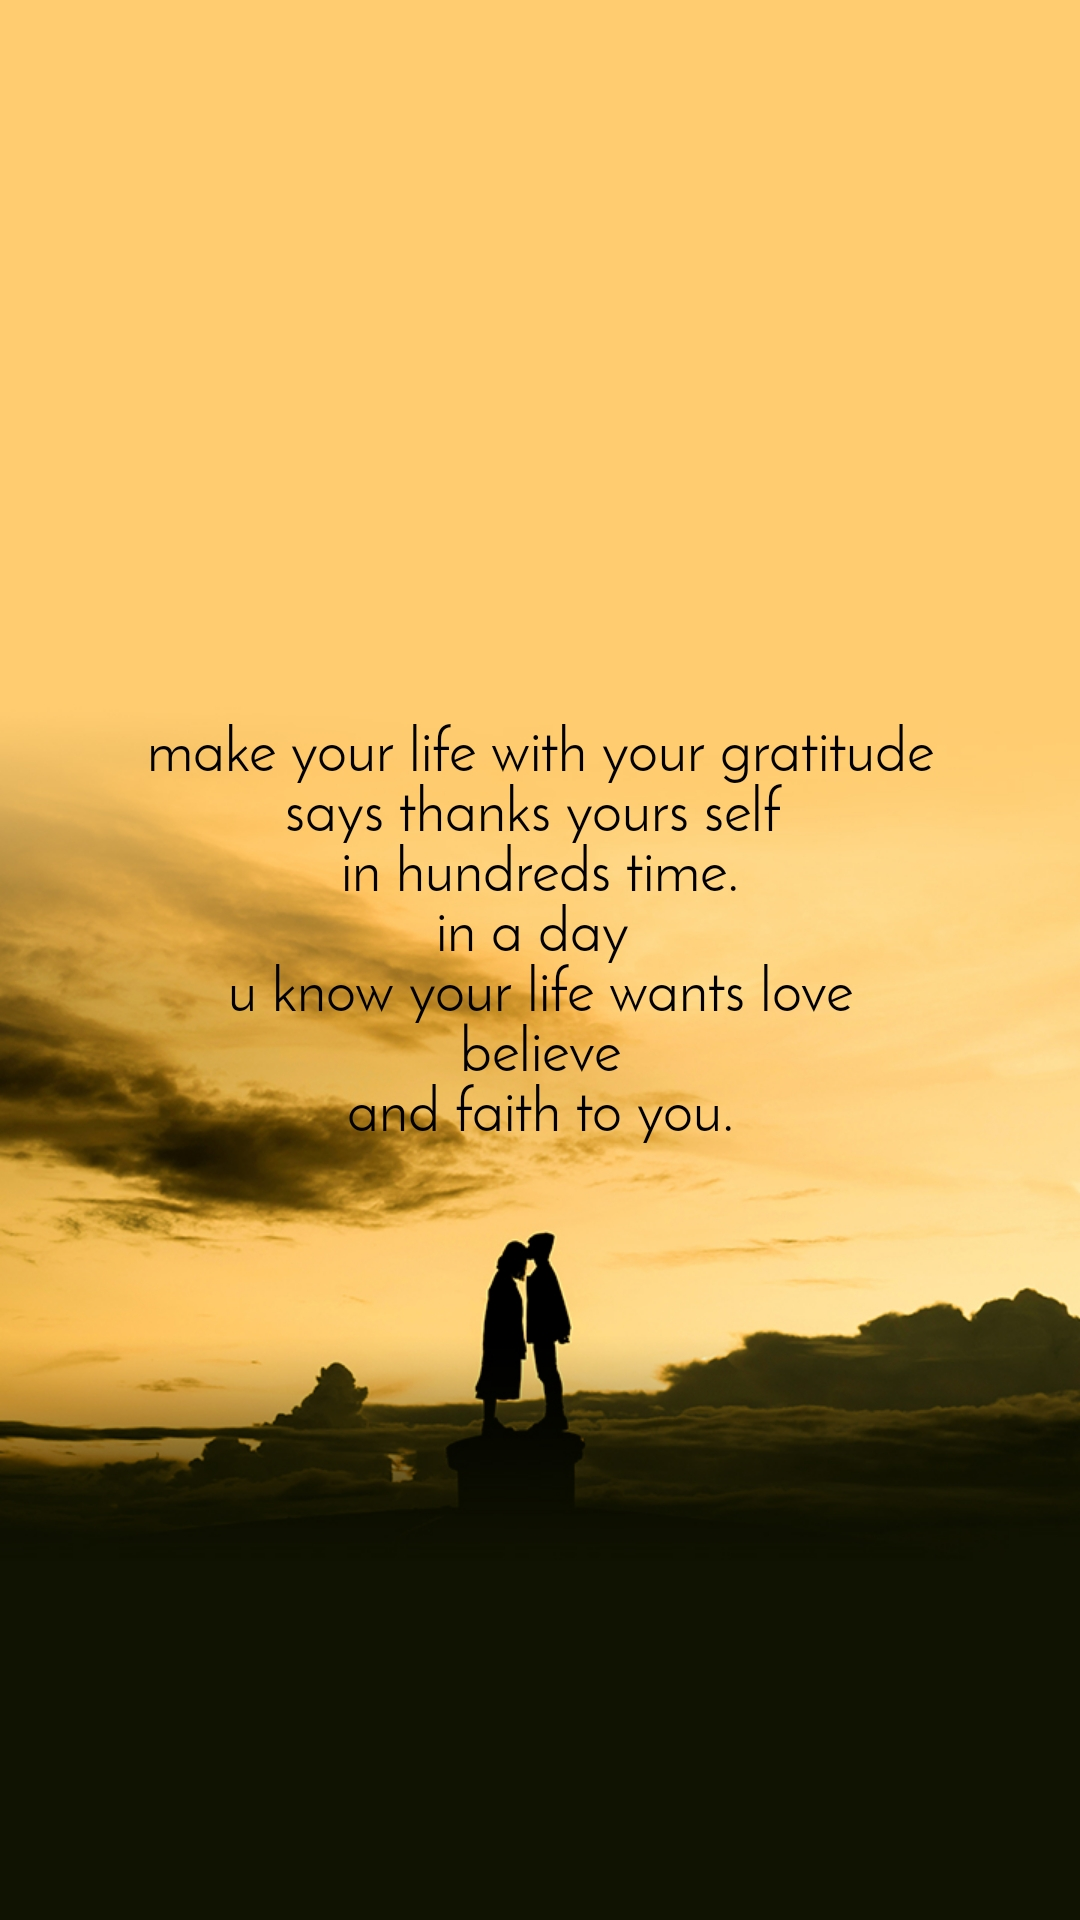 make your life with your gratitude says thanks yours self  in hundreds time. in a day  u know your life wants love believe and faith to you.